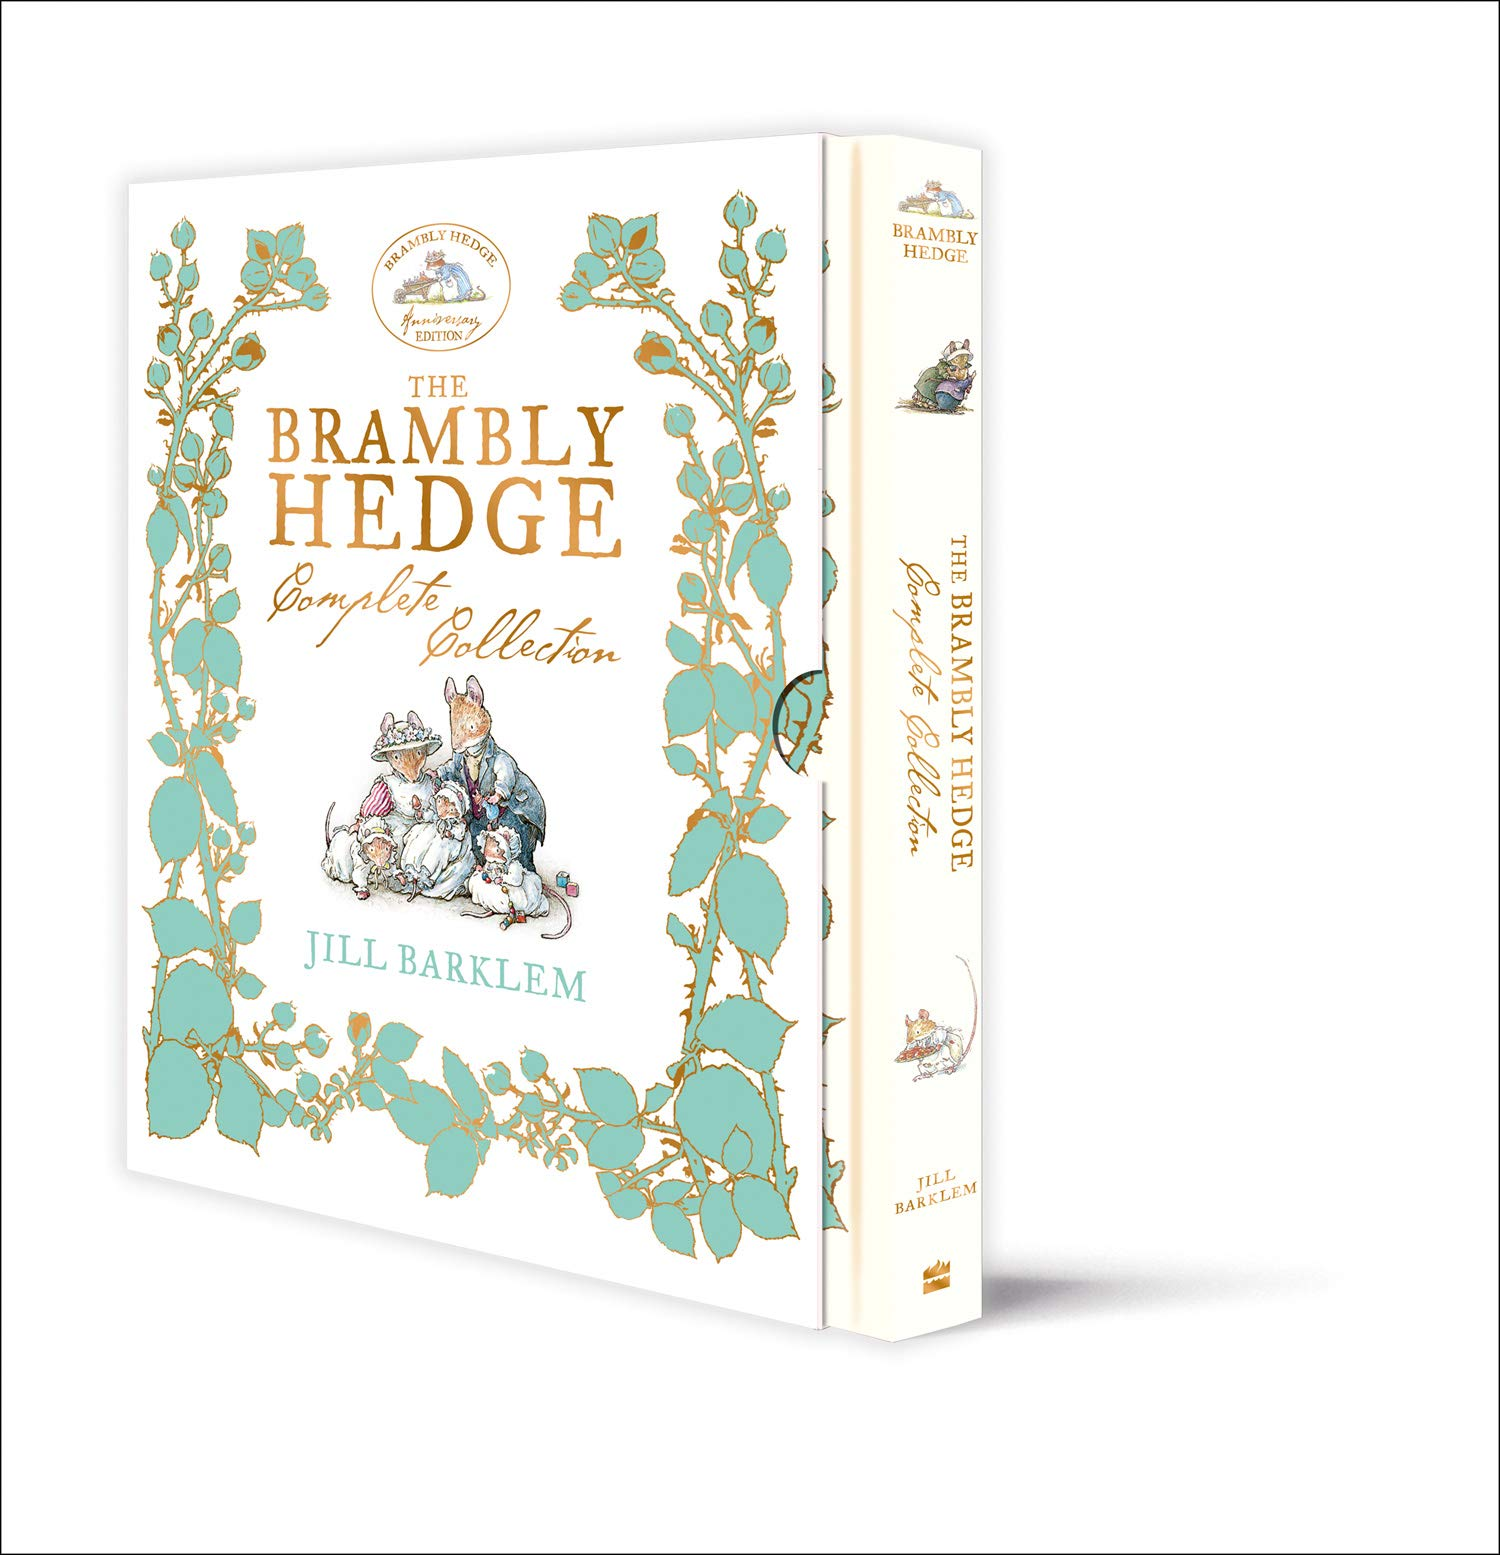 Download The Brambly Hedge Complete Collection ebook